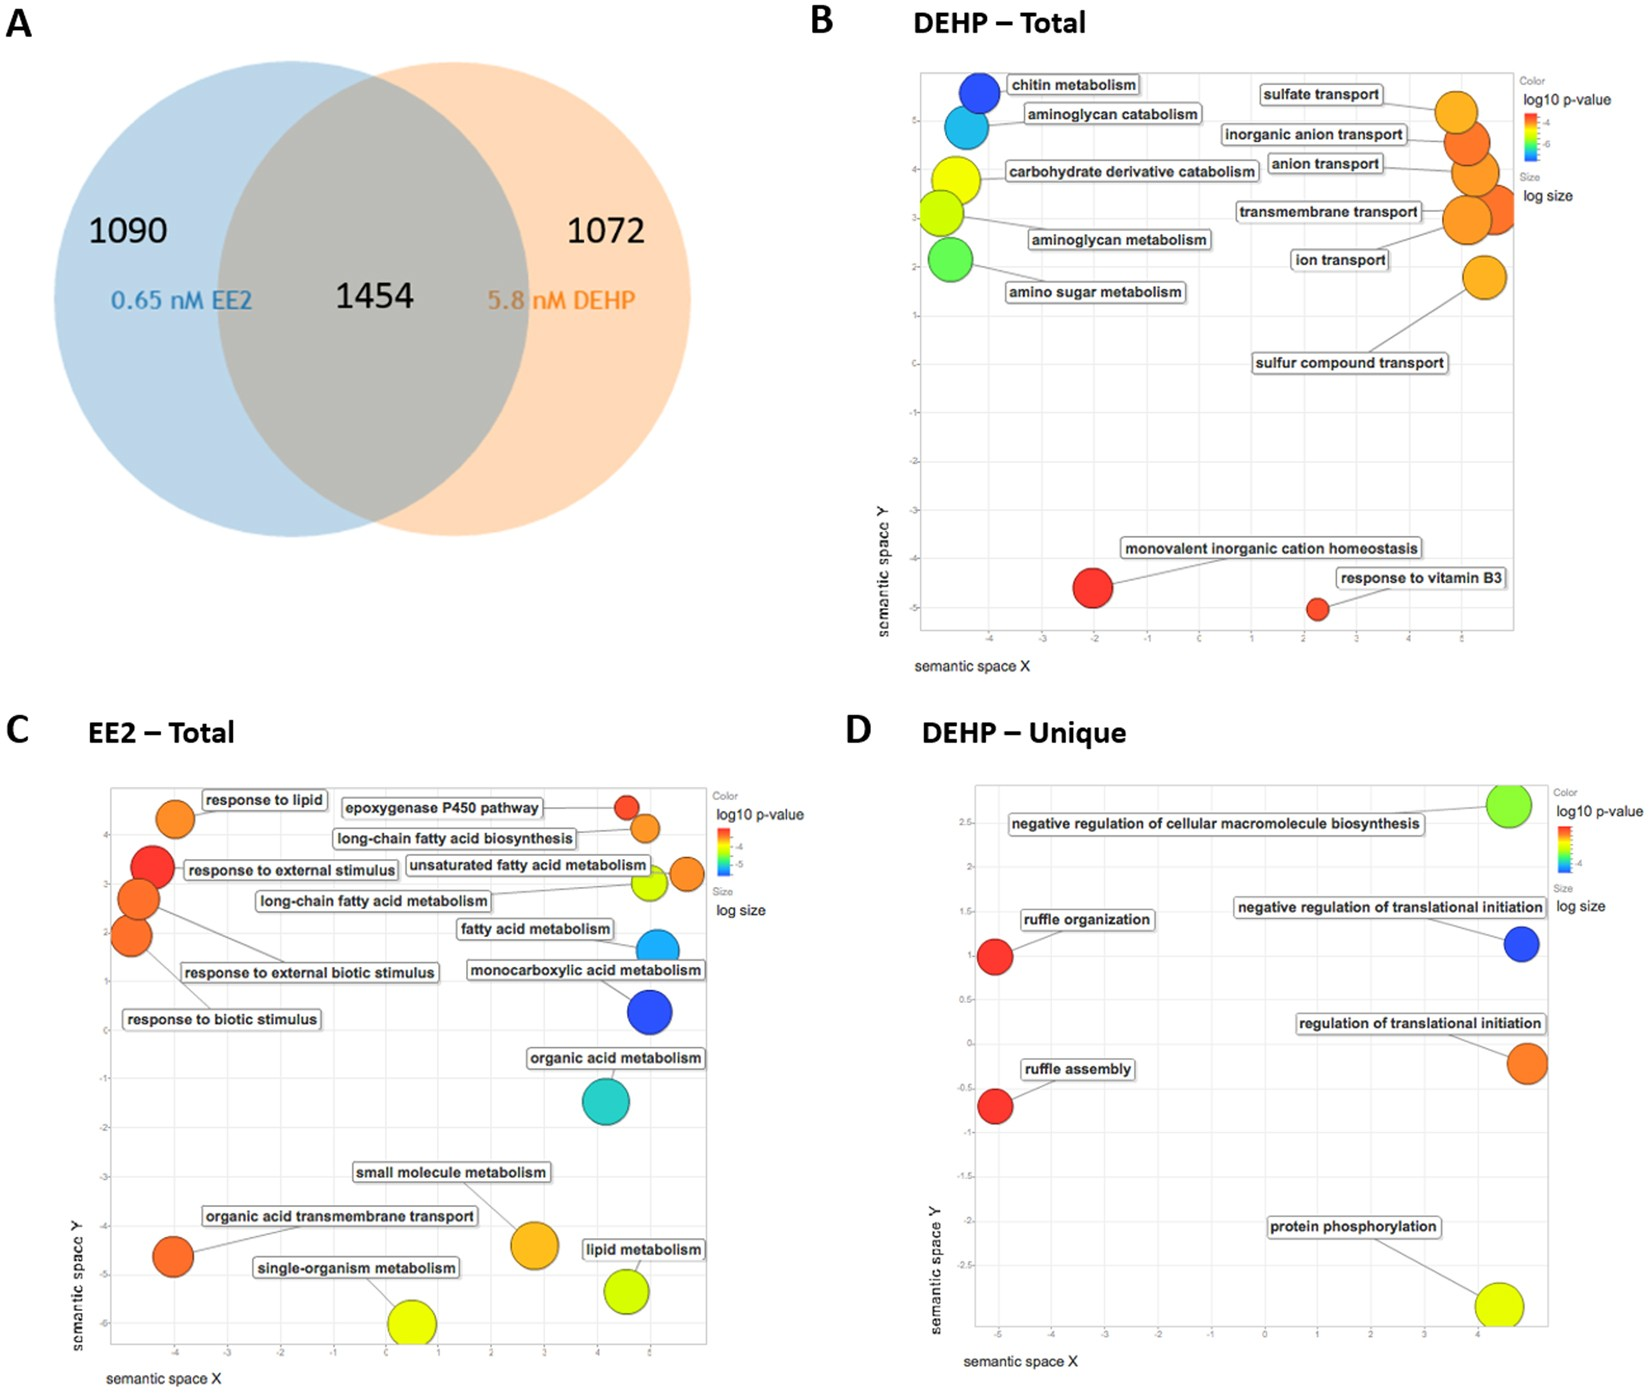 Systems Analysis of the Liver Transcriptome in Adult Male Zebrafish